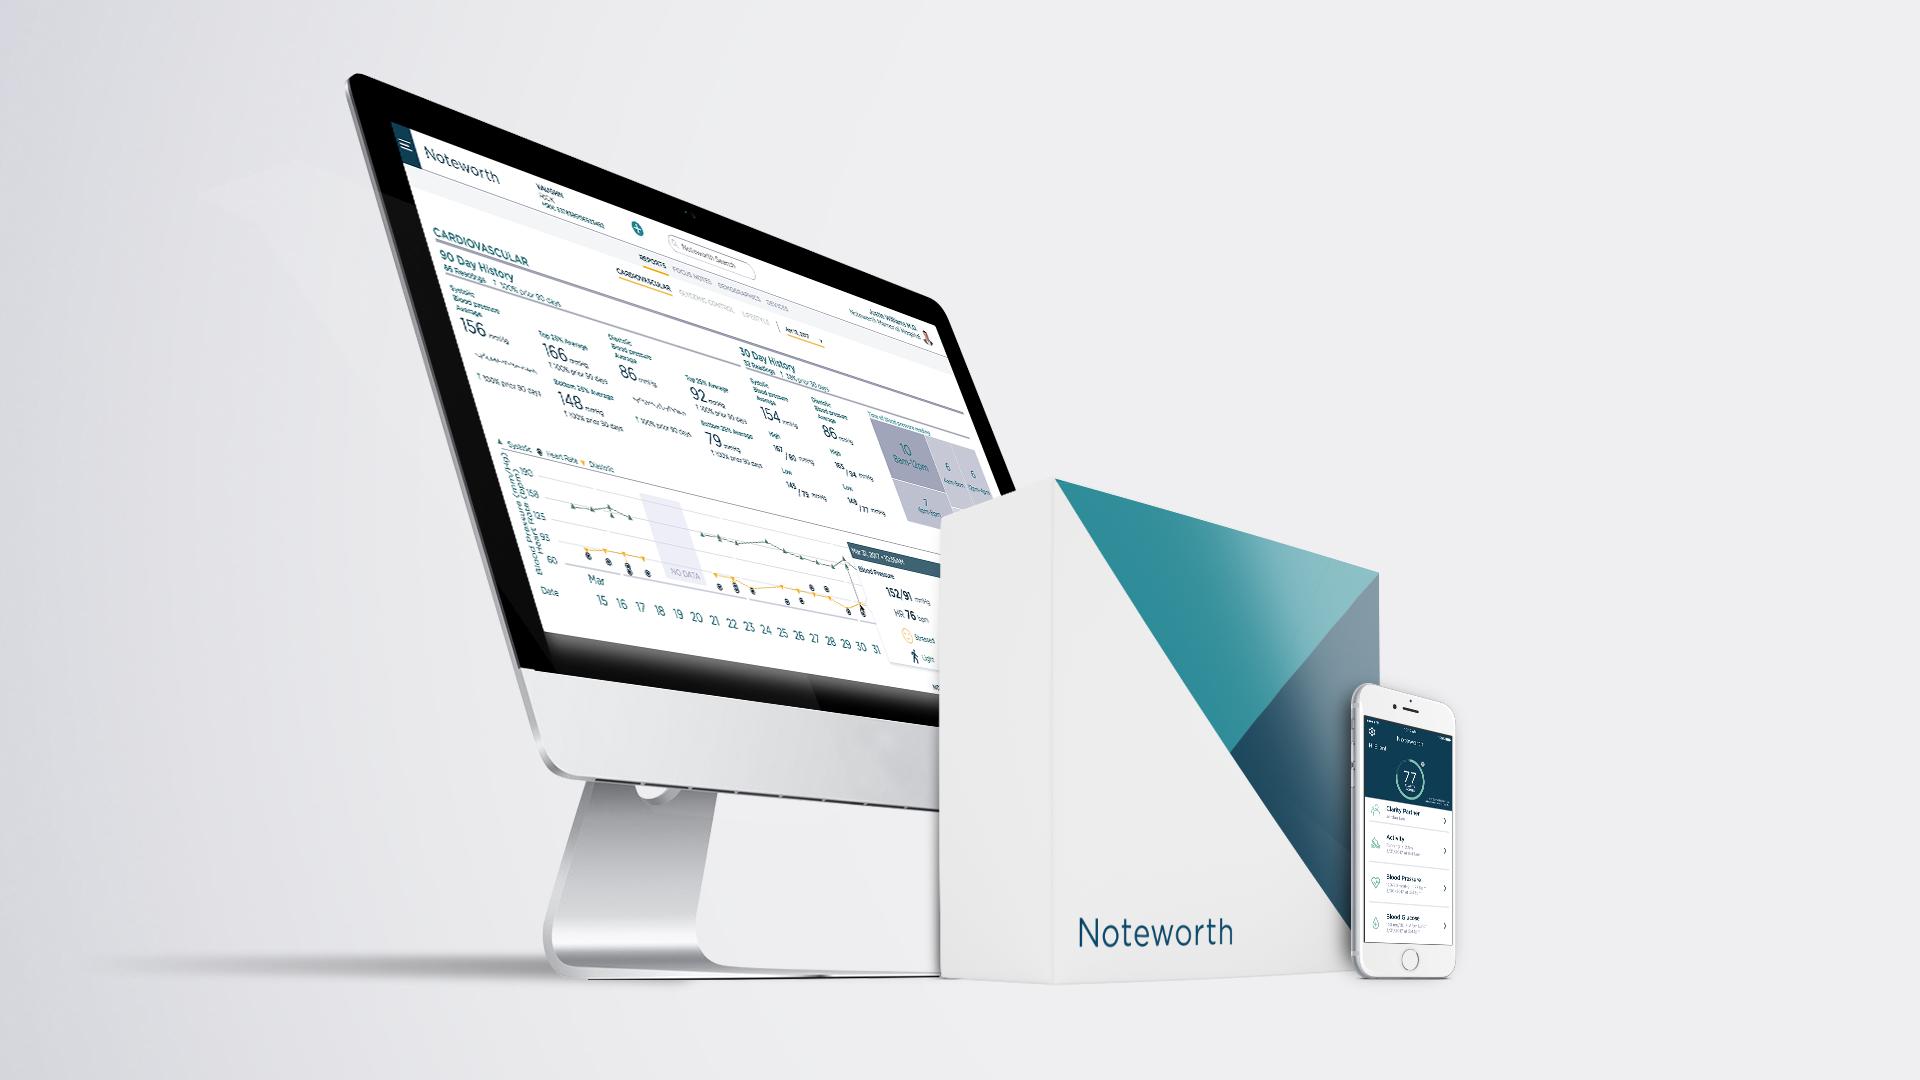 Noteworth  | Software Engineering Intern | Summer 2018   Funding:  Seed-stage, ~3.1M raised  Position:  Software Engineering Intern   Focus Areas:  Backend | Frontend | Product